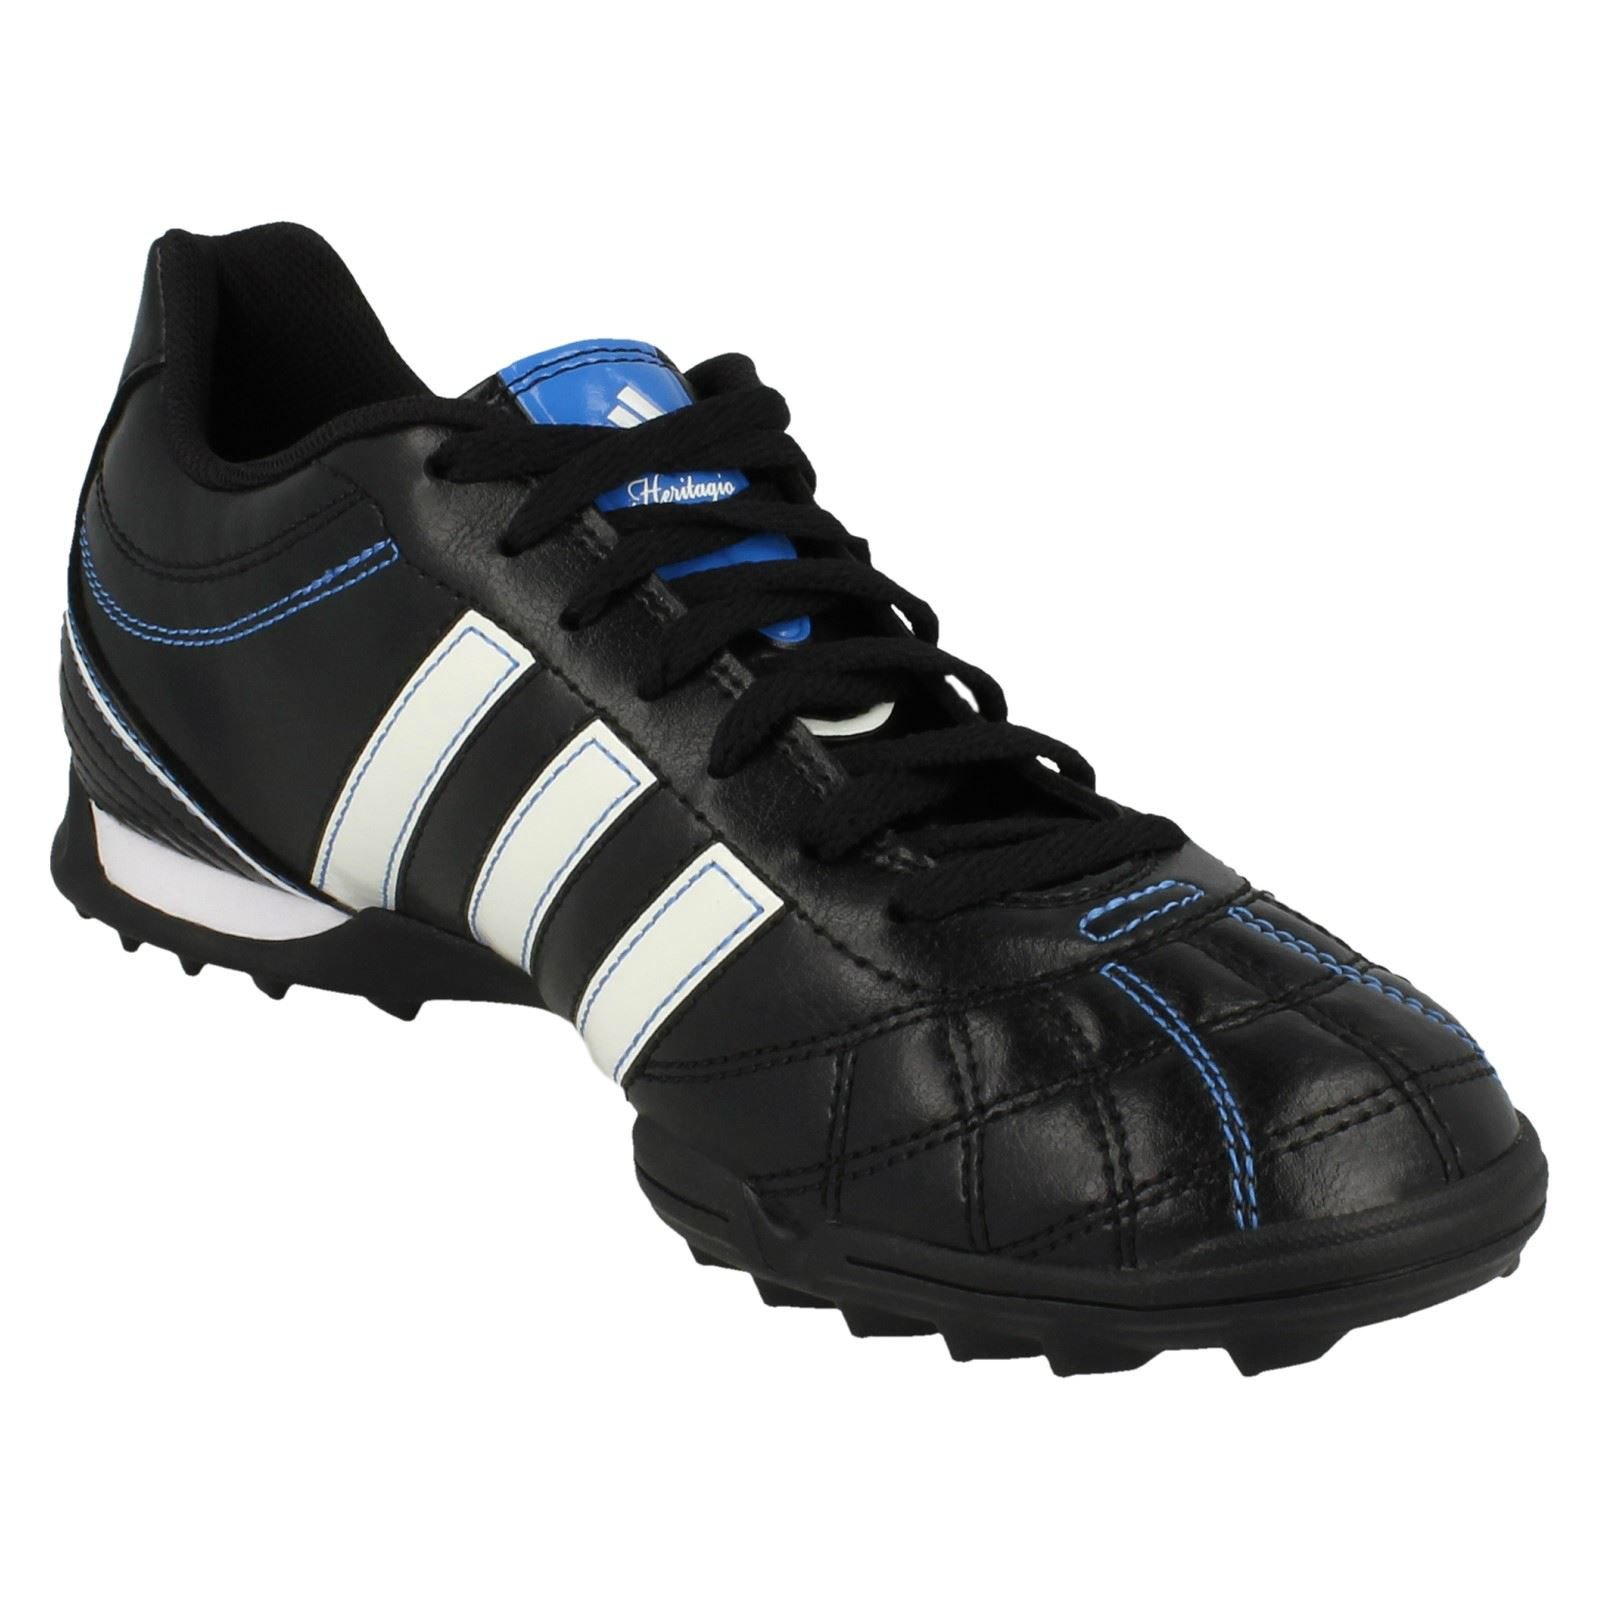 Mens Adidas Football Trainers Heritagio V TRX TF